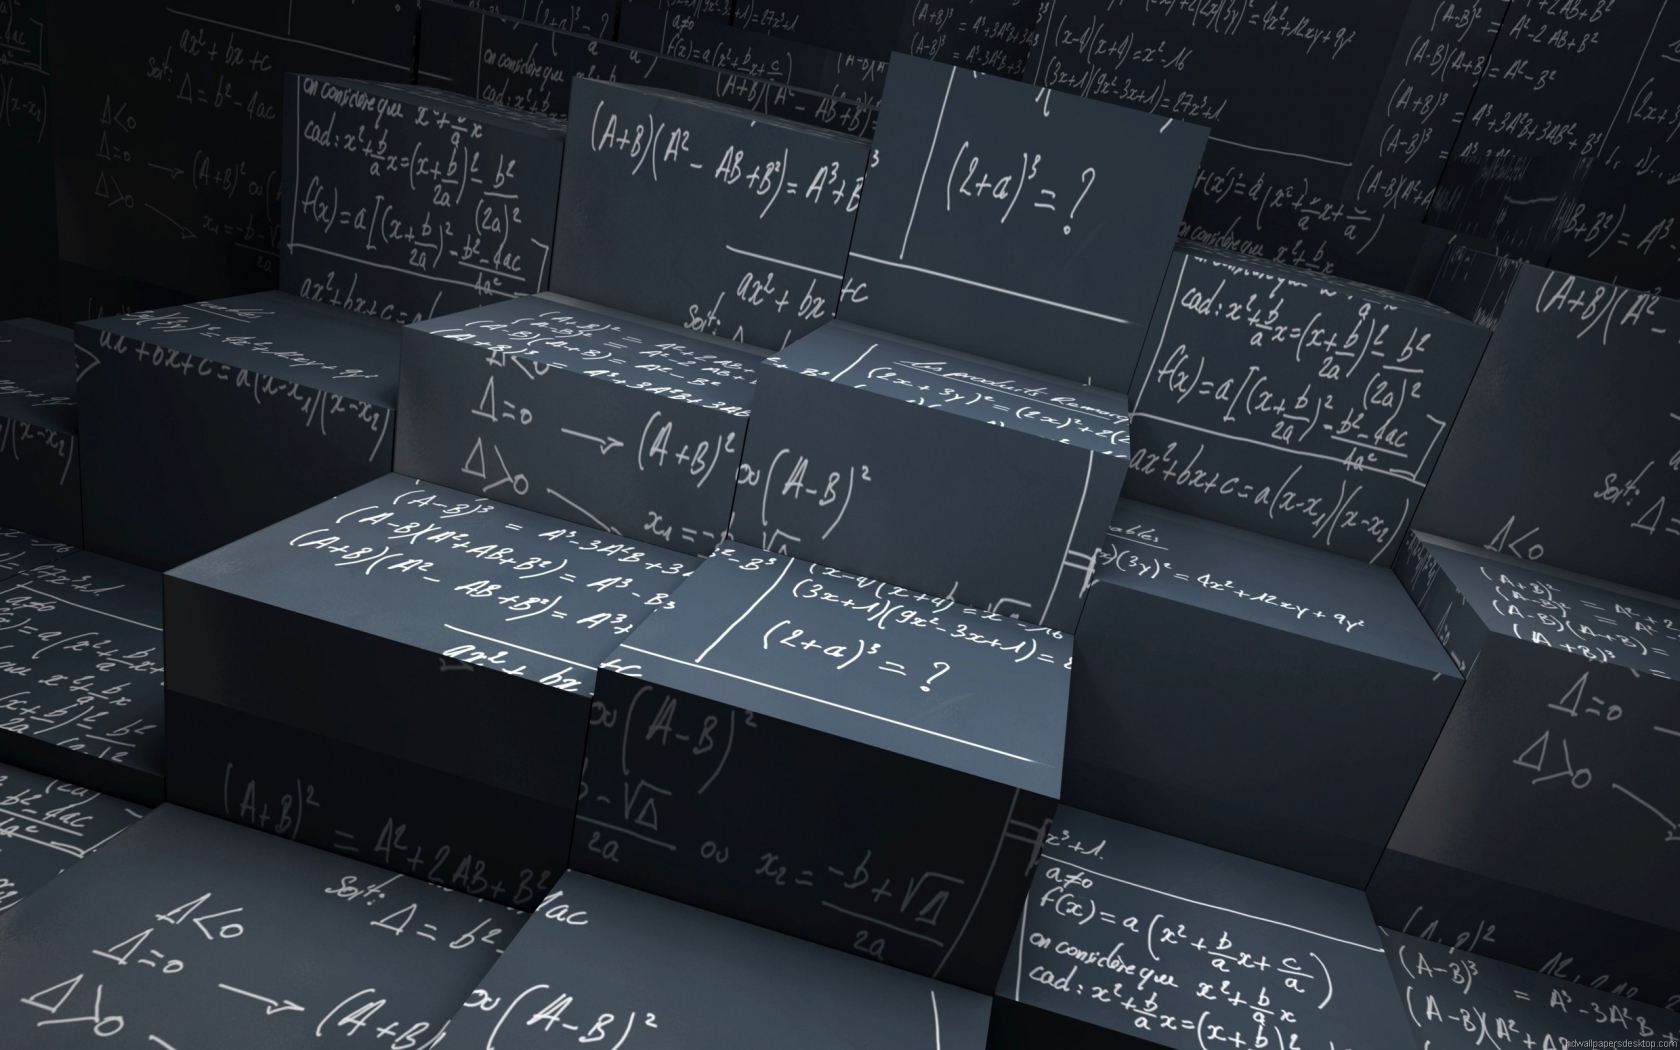 Equations for 1680 x 1050 widescreen resolution